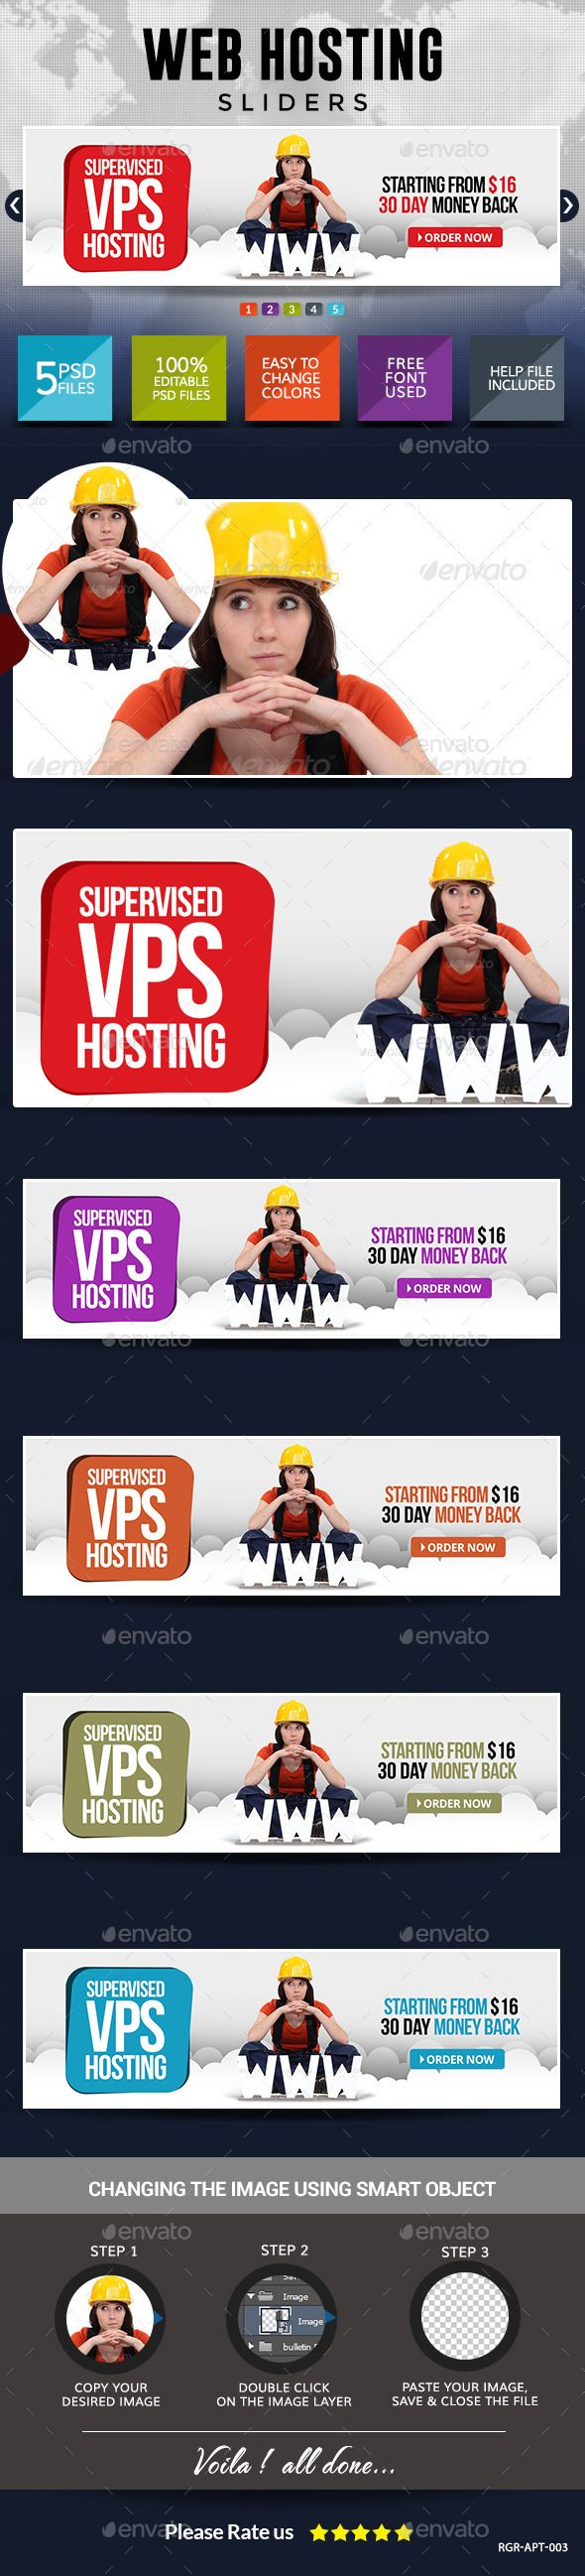 Web Hosting Slider Images Template PSD. Download here: http://graphicriver.net/item/web-hosting-slider-images/8834570?ref=ksioks